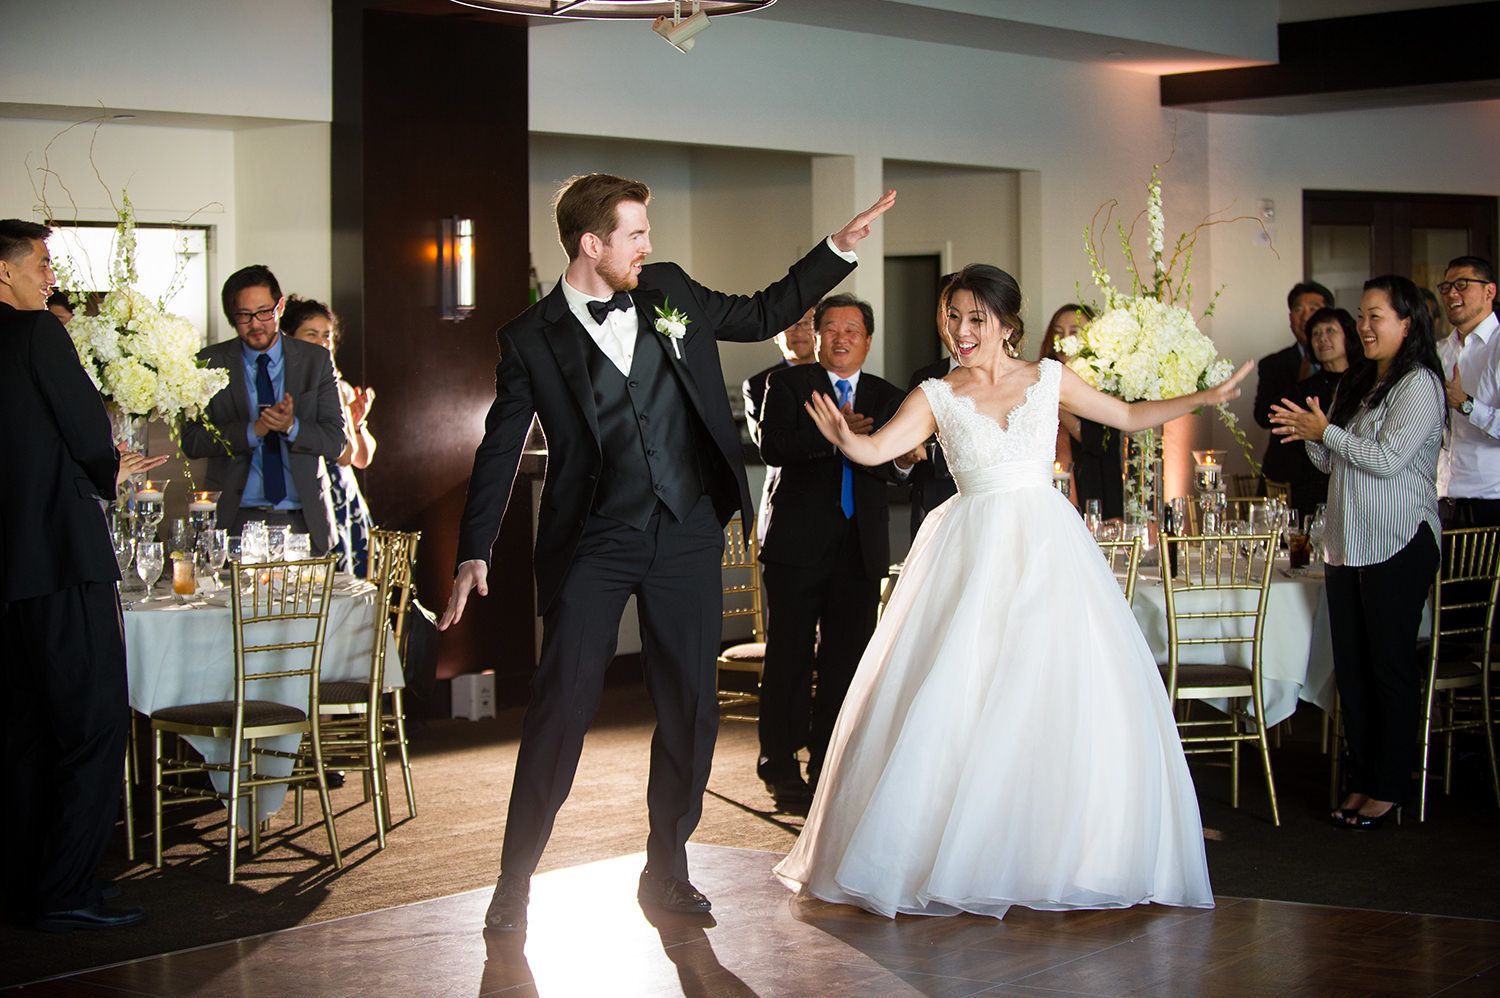 bride and groom dancing a fun first dance